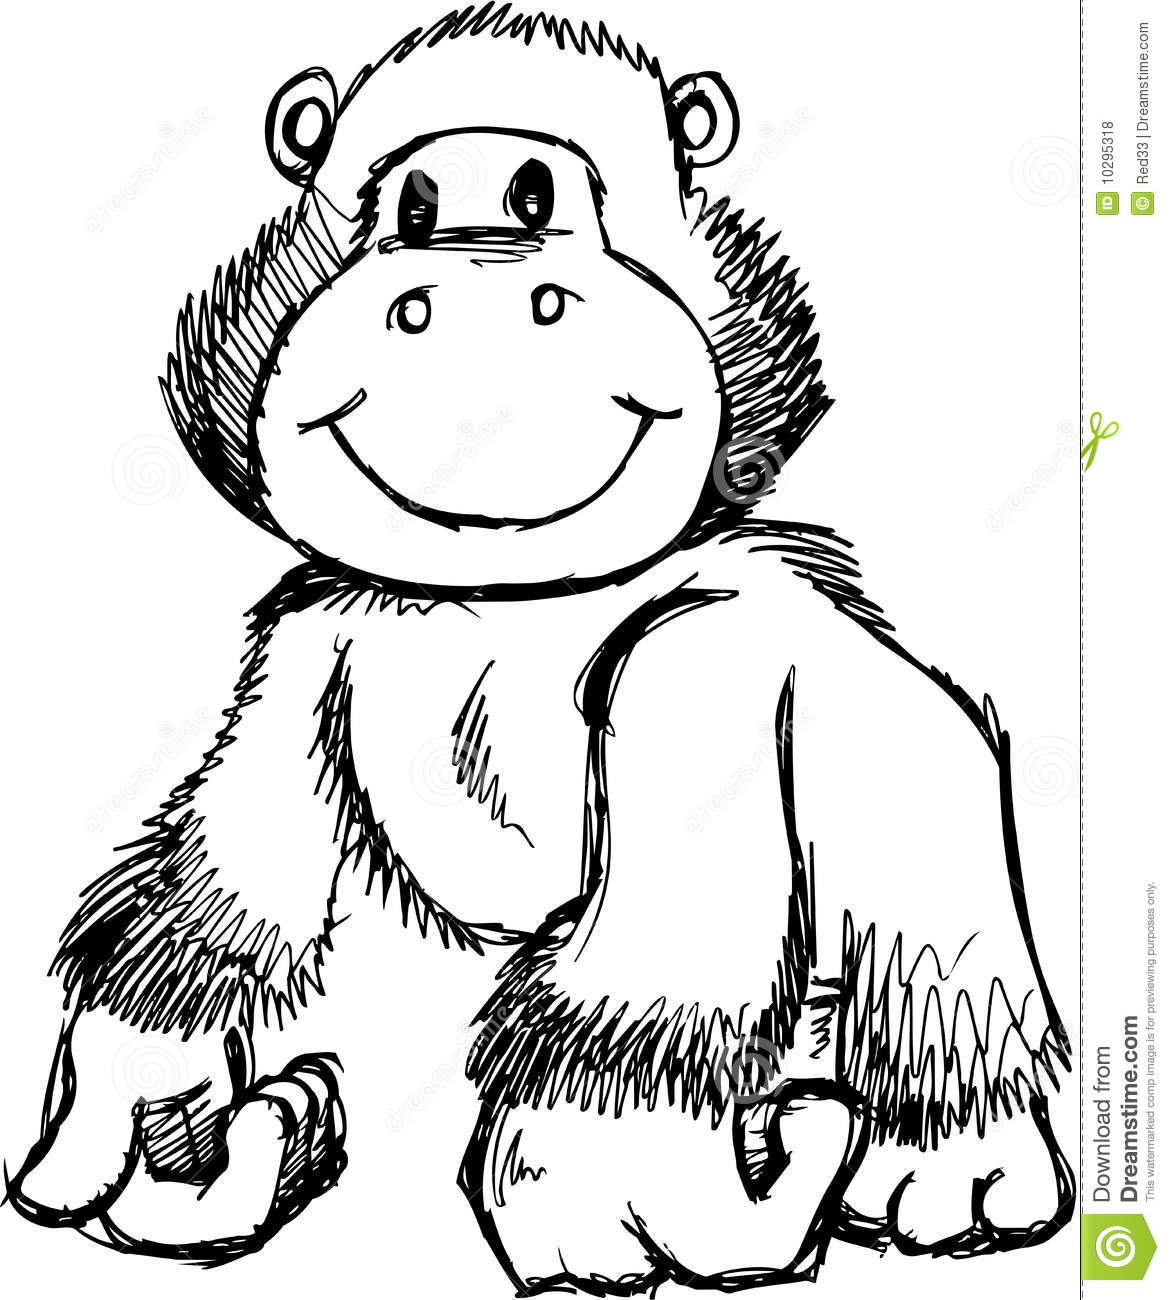 Cute Free Hometown Helpers Black And White Clipart